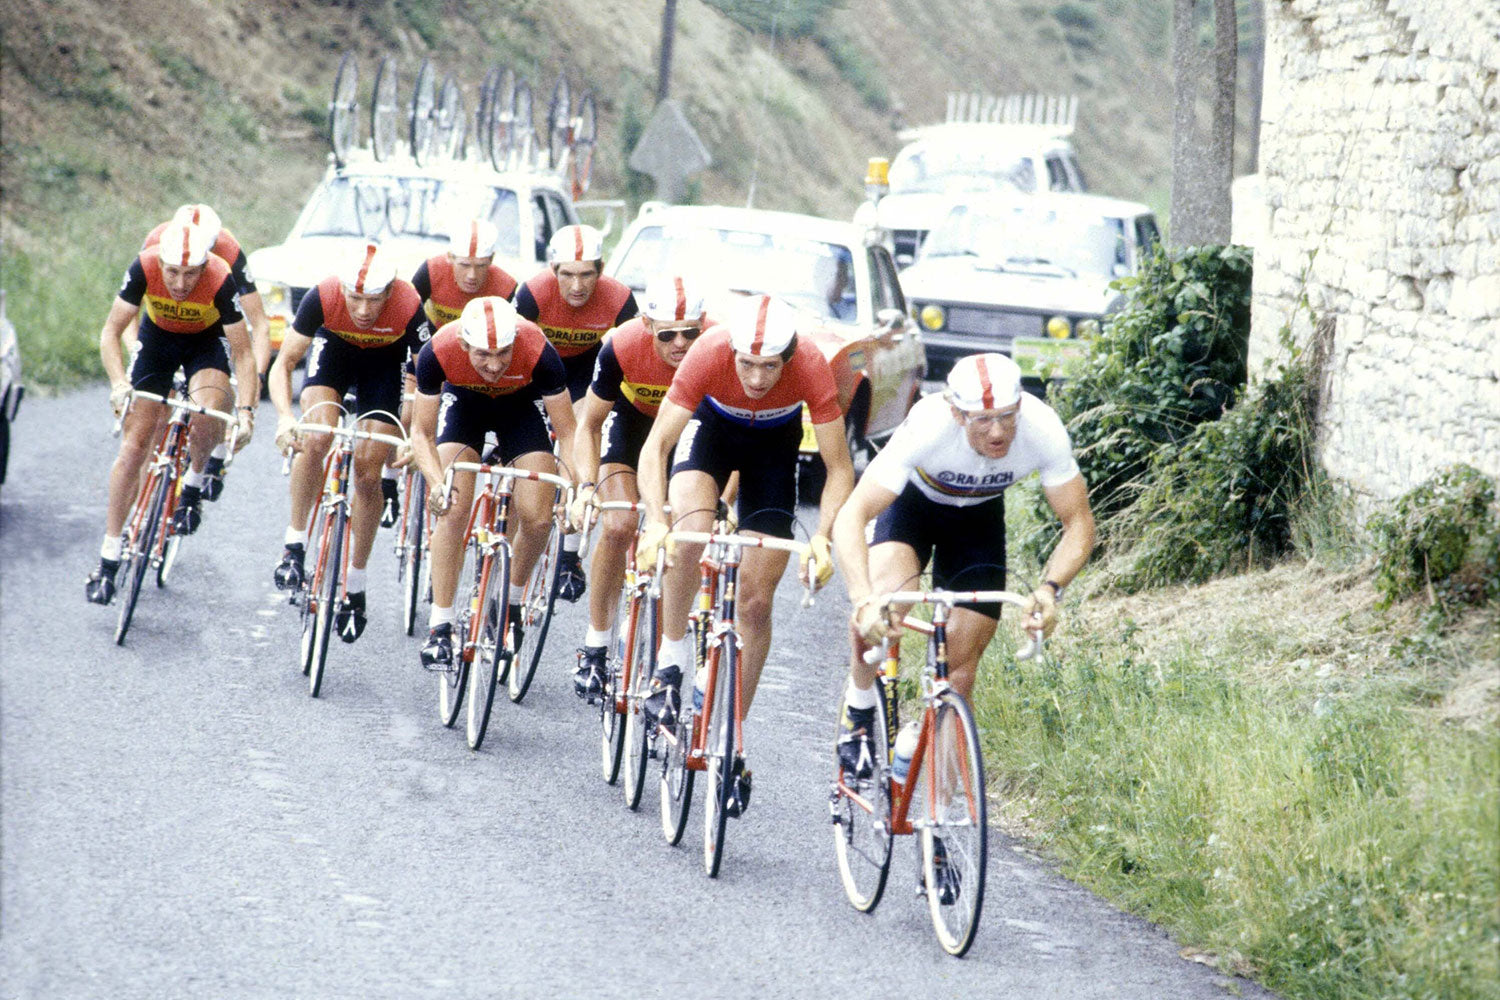 <p>The Raleigh-TI team riding their speciality team time trial at the 1980 Tour de France. The riders are Jan Raas, Johan Van de Velde, Gerrit Knetemann, Paul Wellens, Cees Priem, Bert Oosterbosch, Henk Lubberding and Joop Zoetemelk.